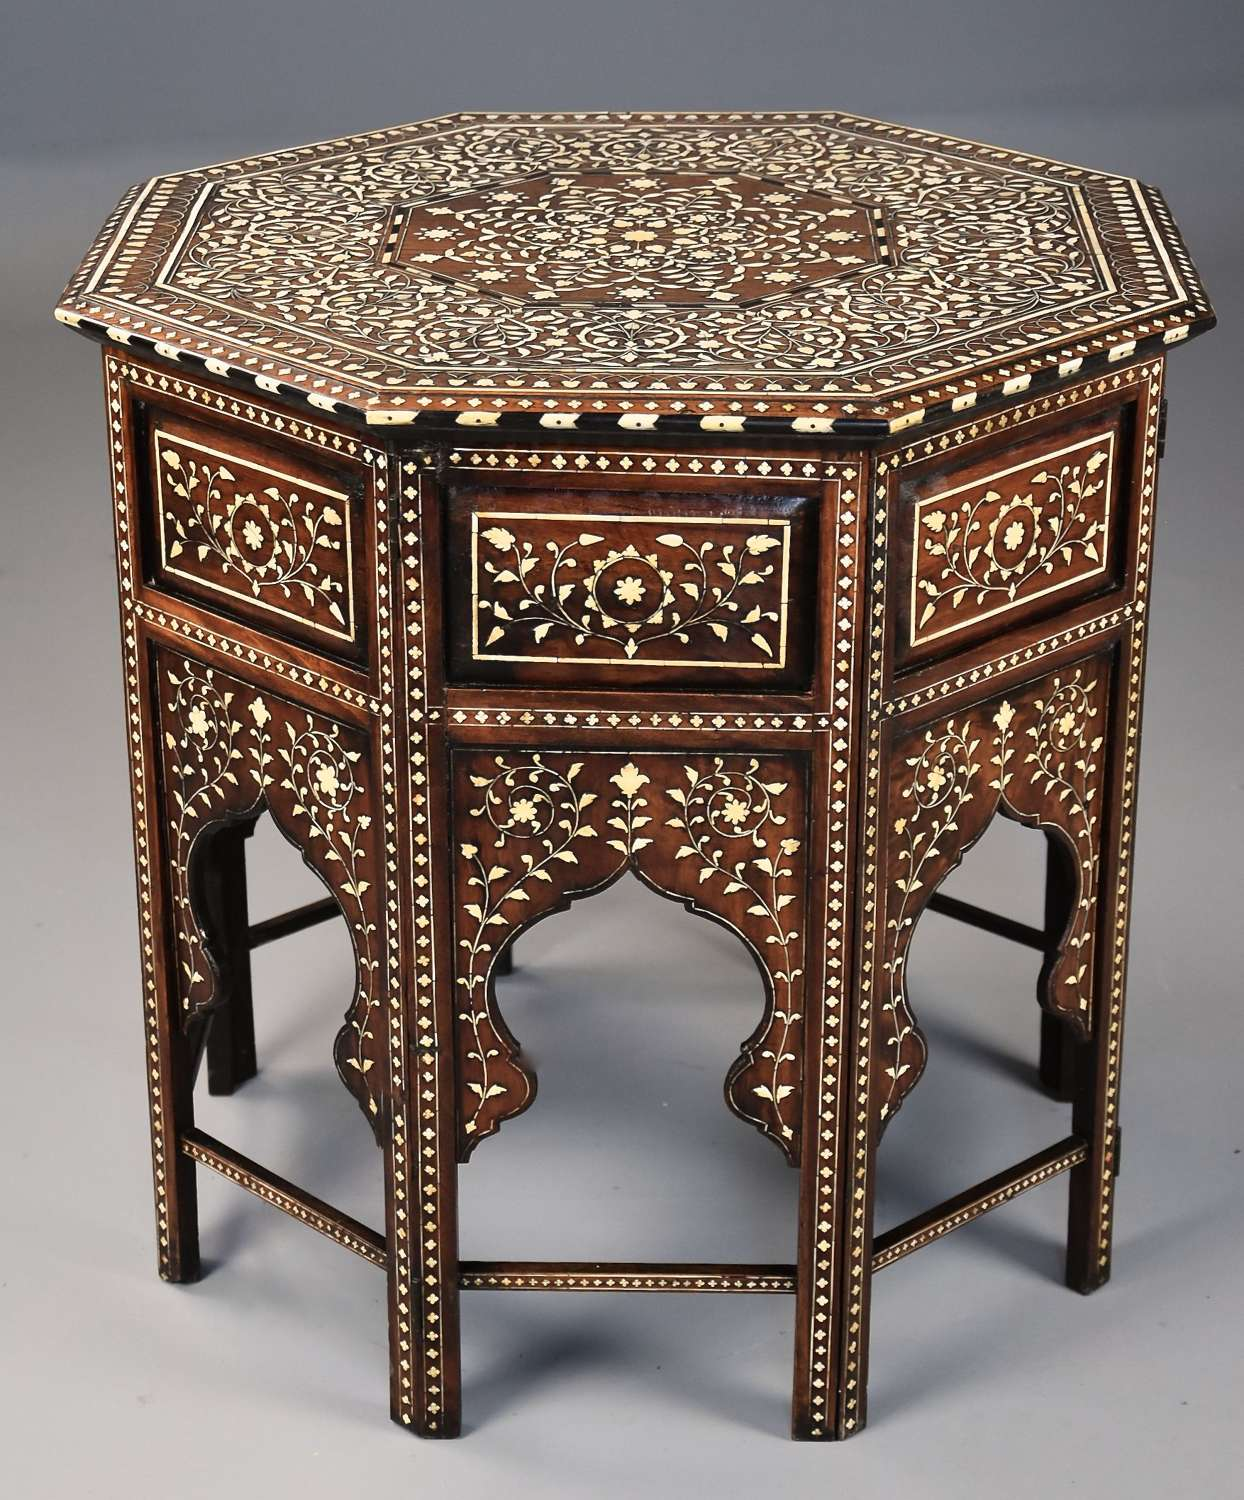 Superb quality 19thc ivory inlaid Anglo Indian octagonal table